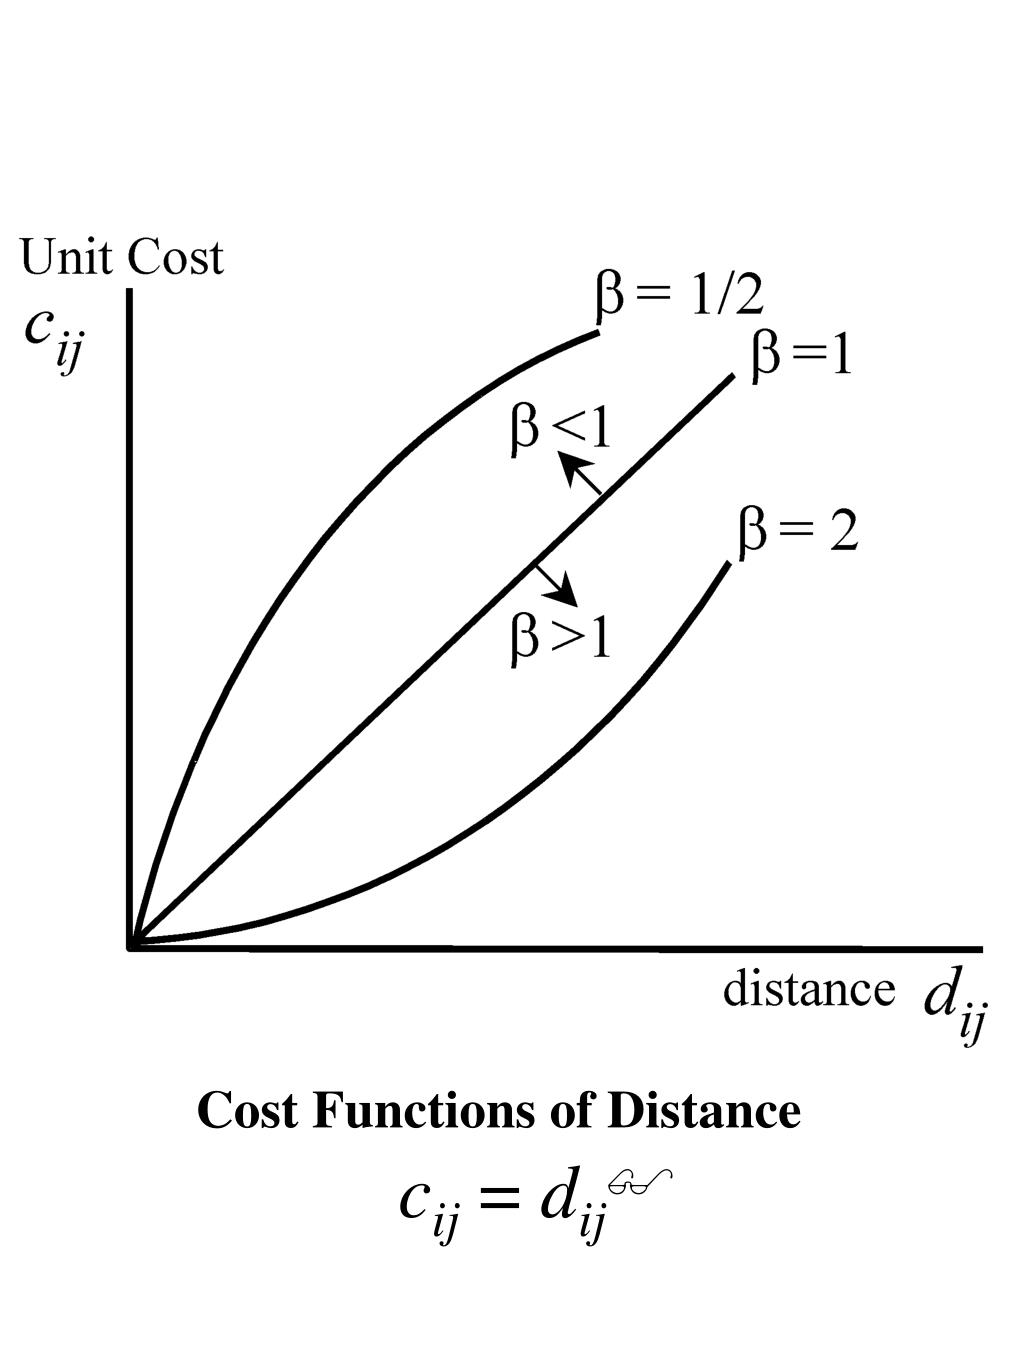 Cost Functions of Distance